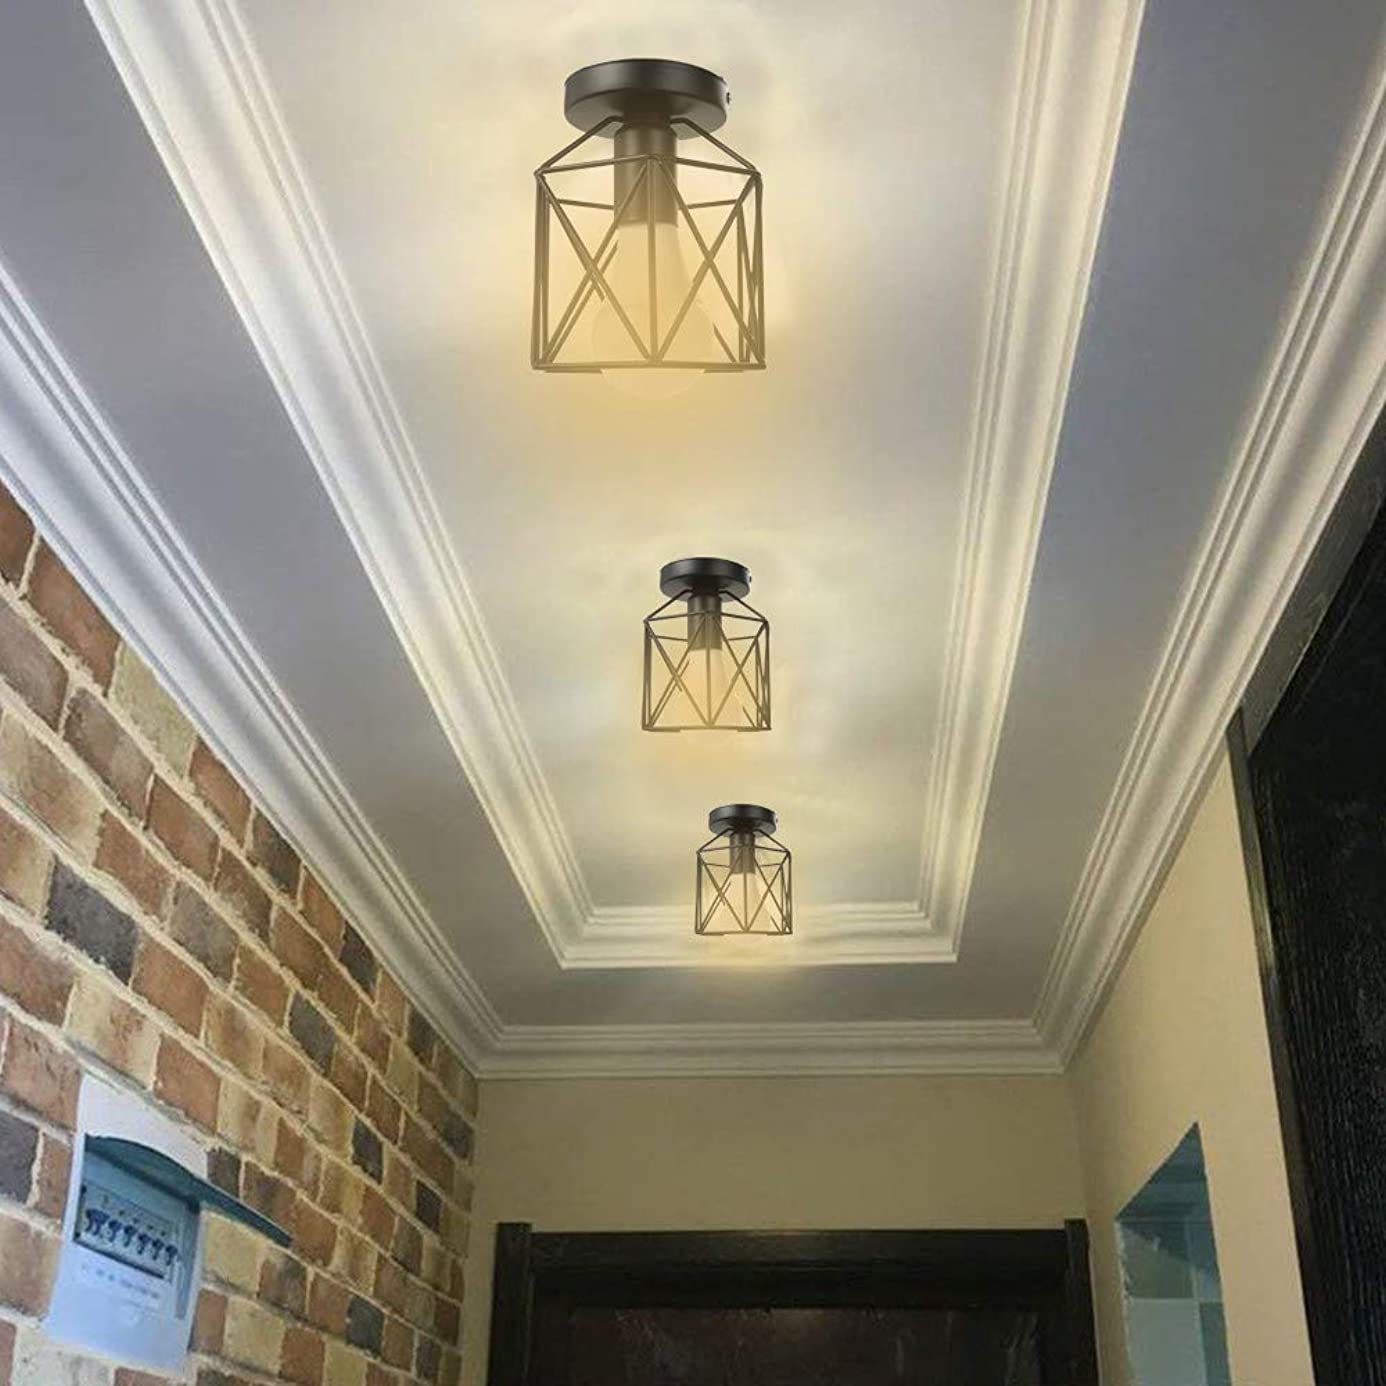 Light Shades for Light Fixtures, Metal Cage Ceiling Light Industry Vintage Home Pedant Lighting Bulb Included (Ship from US!!!)